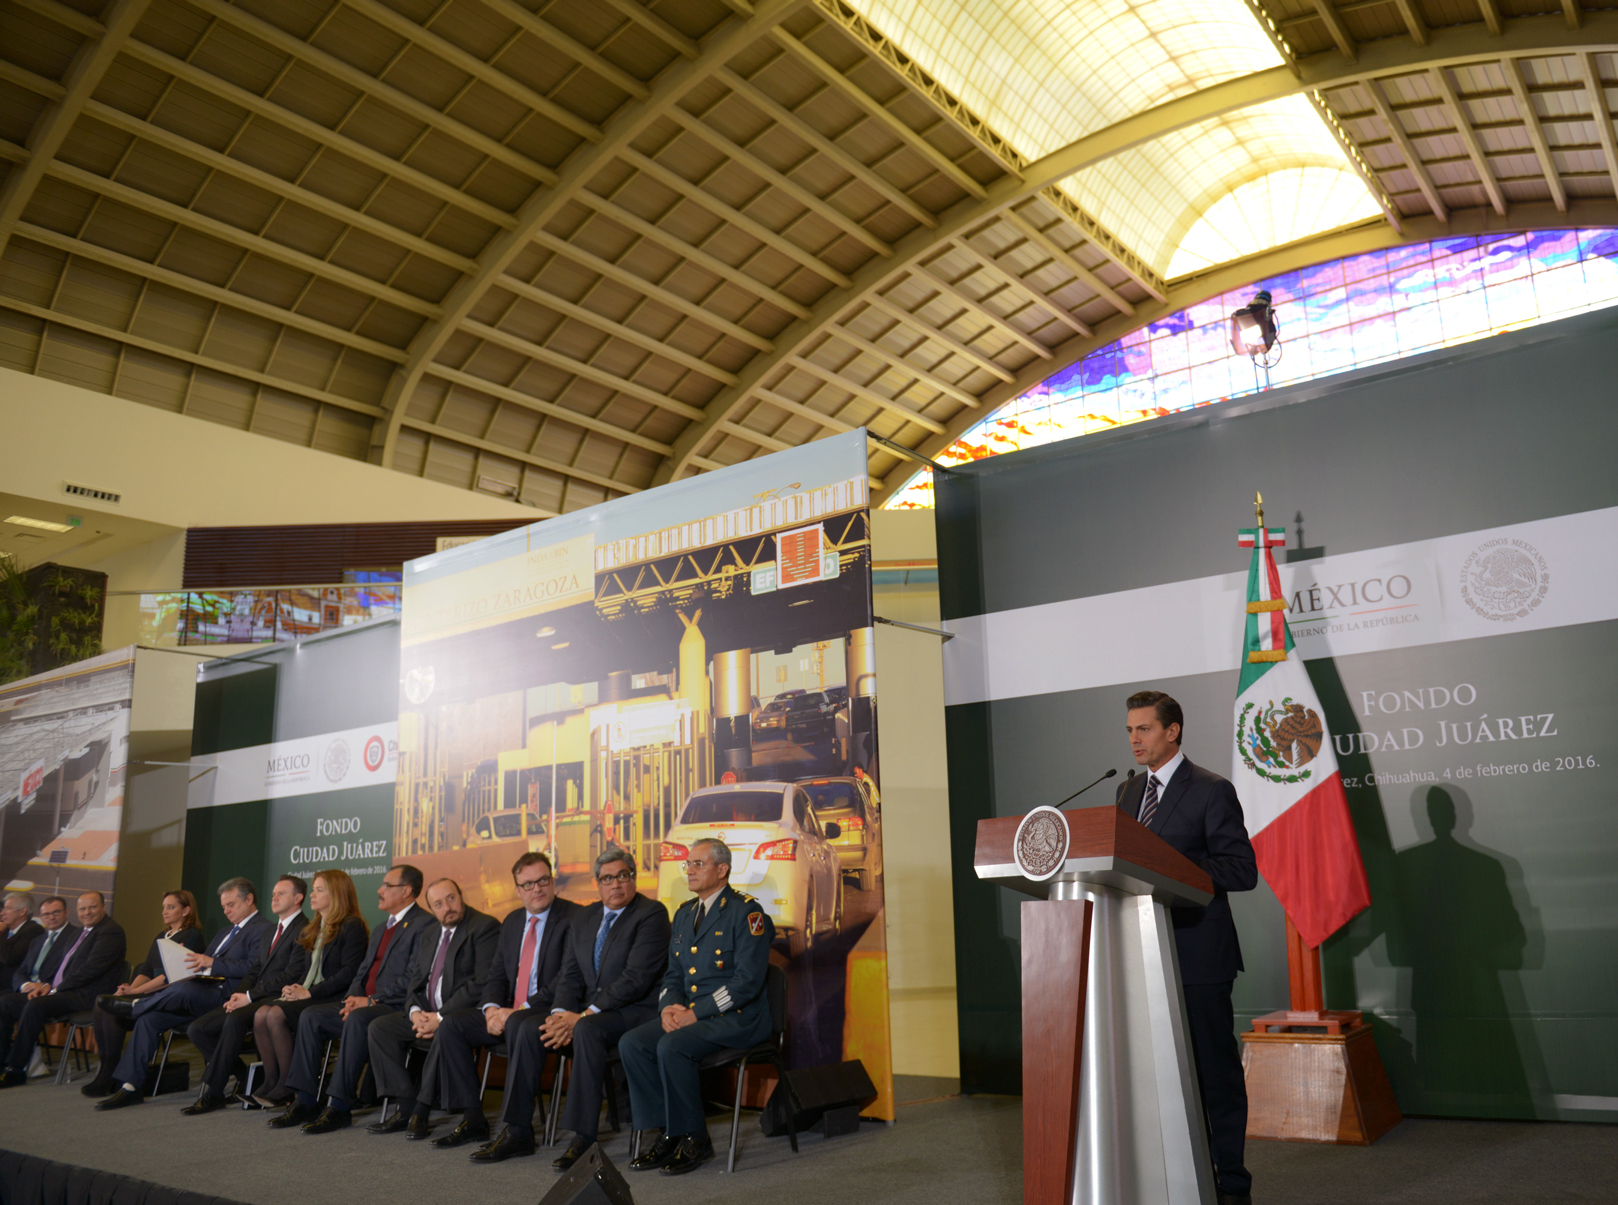 He declared that the Ciudad Juárez Fund has an initial capital of 1.600 billion pesos.